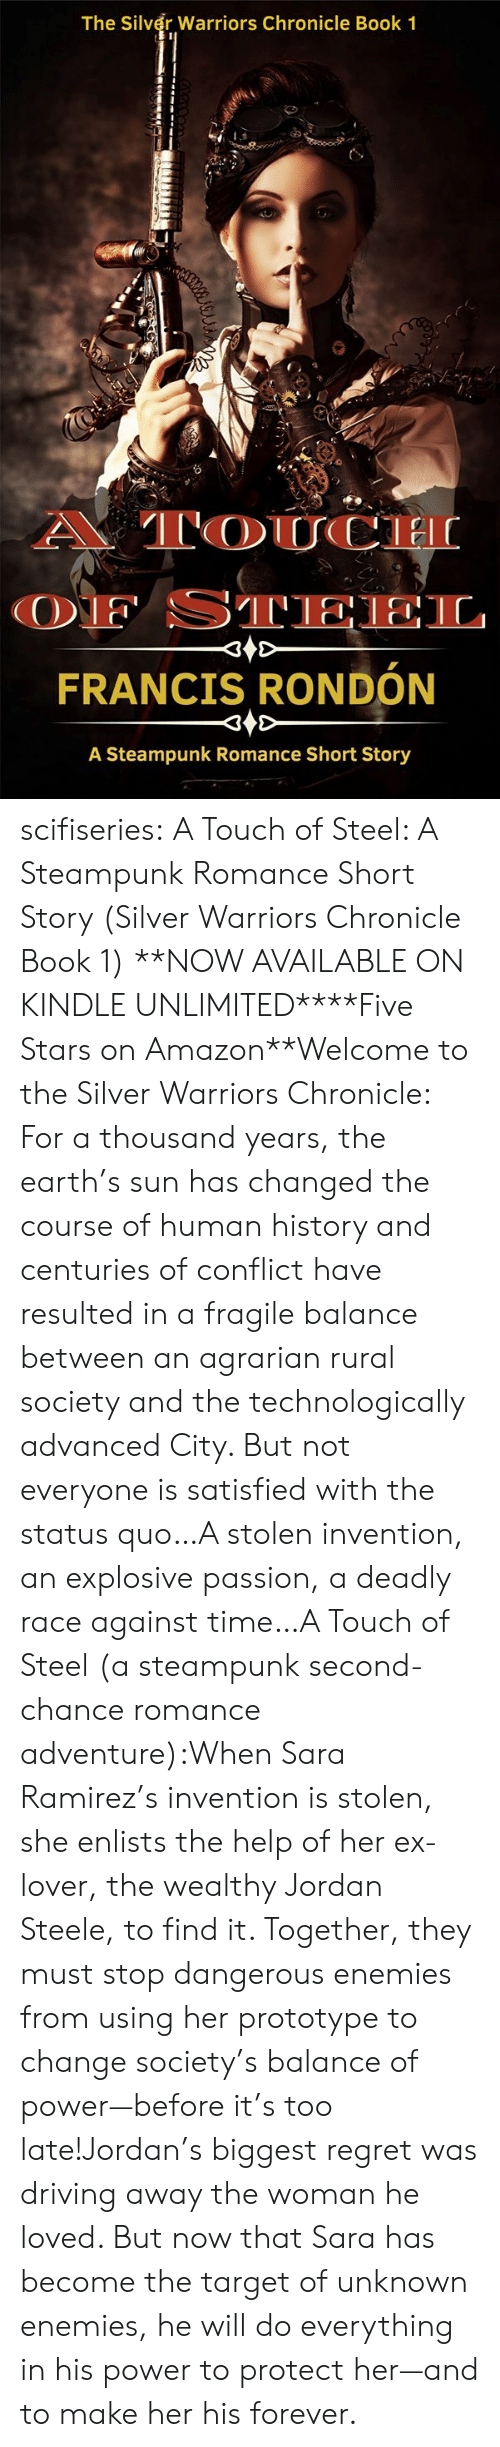 Amazon, Driving, and Regret: The Silver Warriors Chronicle Book 1  A TOUCH  OF STEEL  FRANCIS RONDÓN  A Steampunk Romance Short Story scifiseries:   A Touch of Steel: A Steampunk Romance Short Story (Silver Warriors Chronicle Book 1)   **NOW AVAILABLE ON KINDLE UNLIMITED****Five Stars on Amazon**Welcome to the Silver Warriors Chronicle: For a thousand years, the earth's sun has changed the course of human history and centuries of conflict have resulted in a fragile balance between an agrarian rural society and the technologically advanced City. But not everyone is satisfied with the status quo…A stolen invention, an explosive passion, a deadly race against time…A Touch of Steel (a steampunk second-chance romance adventure):When Sara Ramirez's invention is stolen, she enlists the help of her ex-lover, the wealthy Jordan Steele, to find it. Together, they must stop dangerous enemies from using her prototype to change society's balance of power—before it's too late!Jordan's biggest regret was driving away the woman he loved. But now that Sara has become the target of unknown enemies, he will do everything in his power to protect her—and to make her his forever.